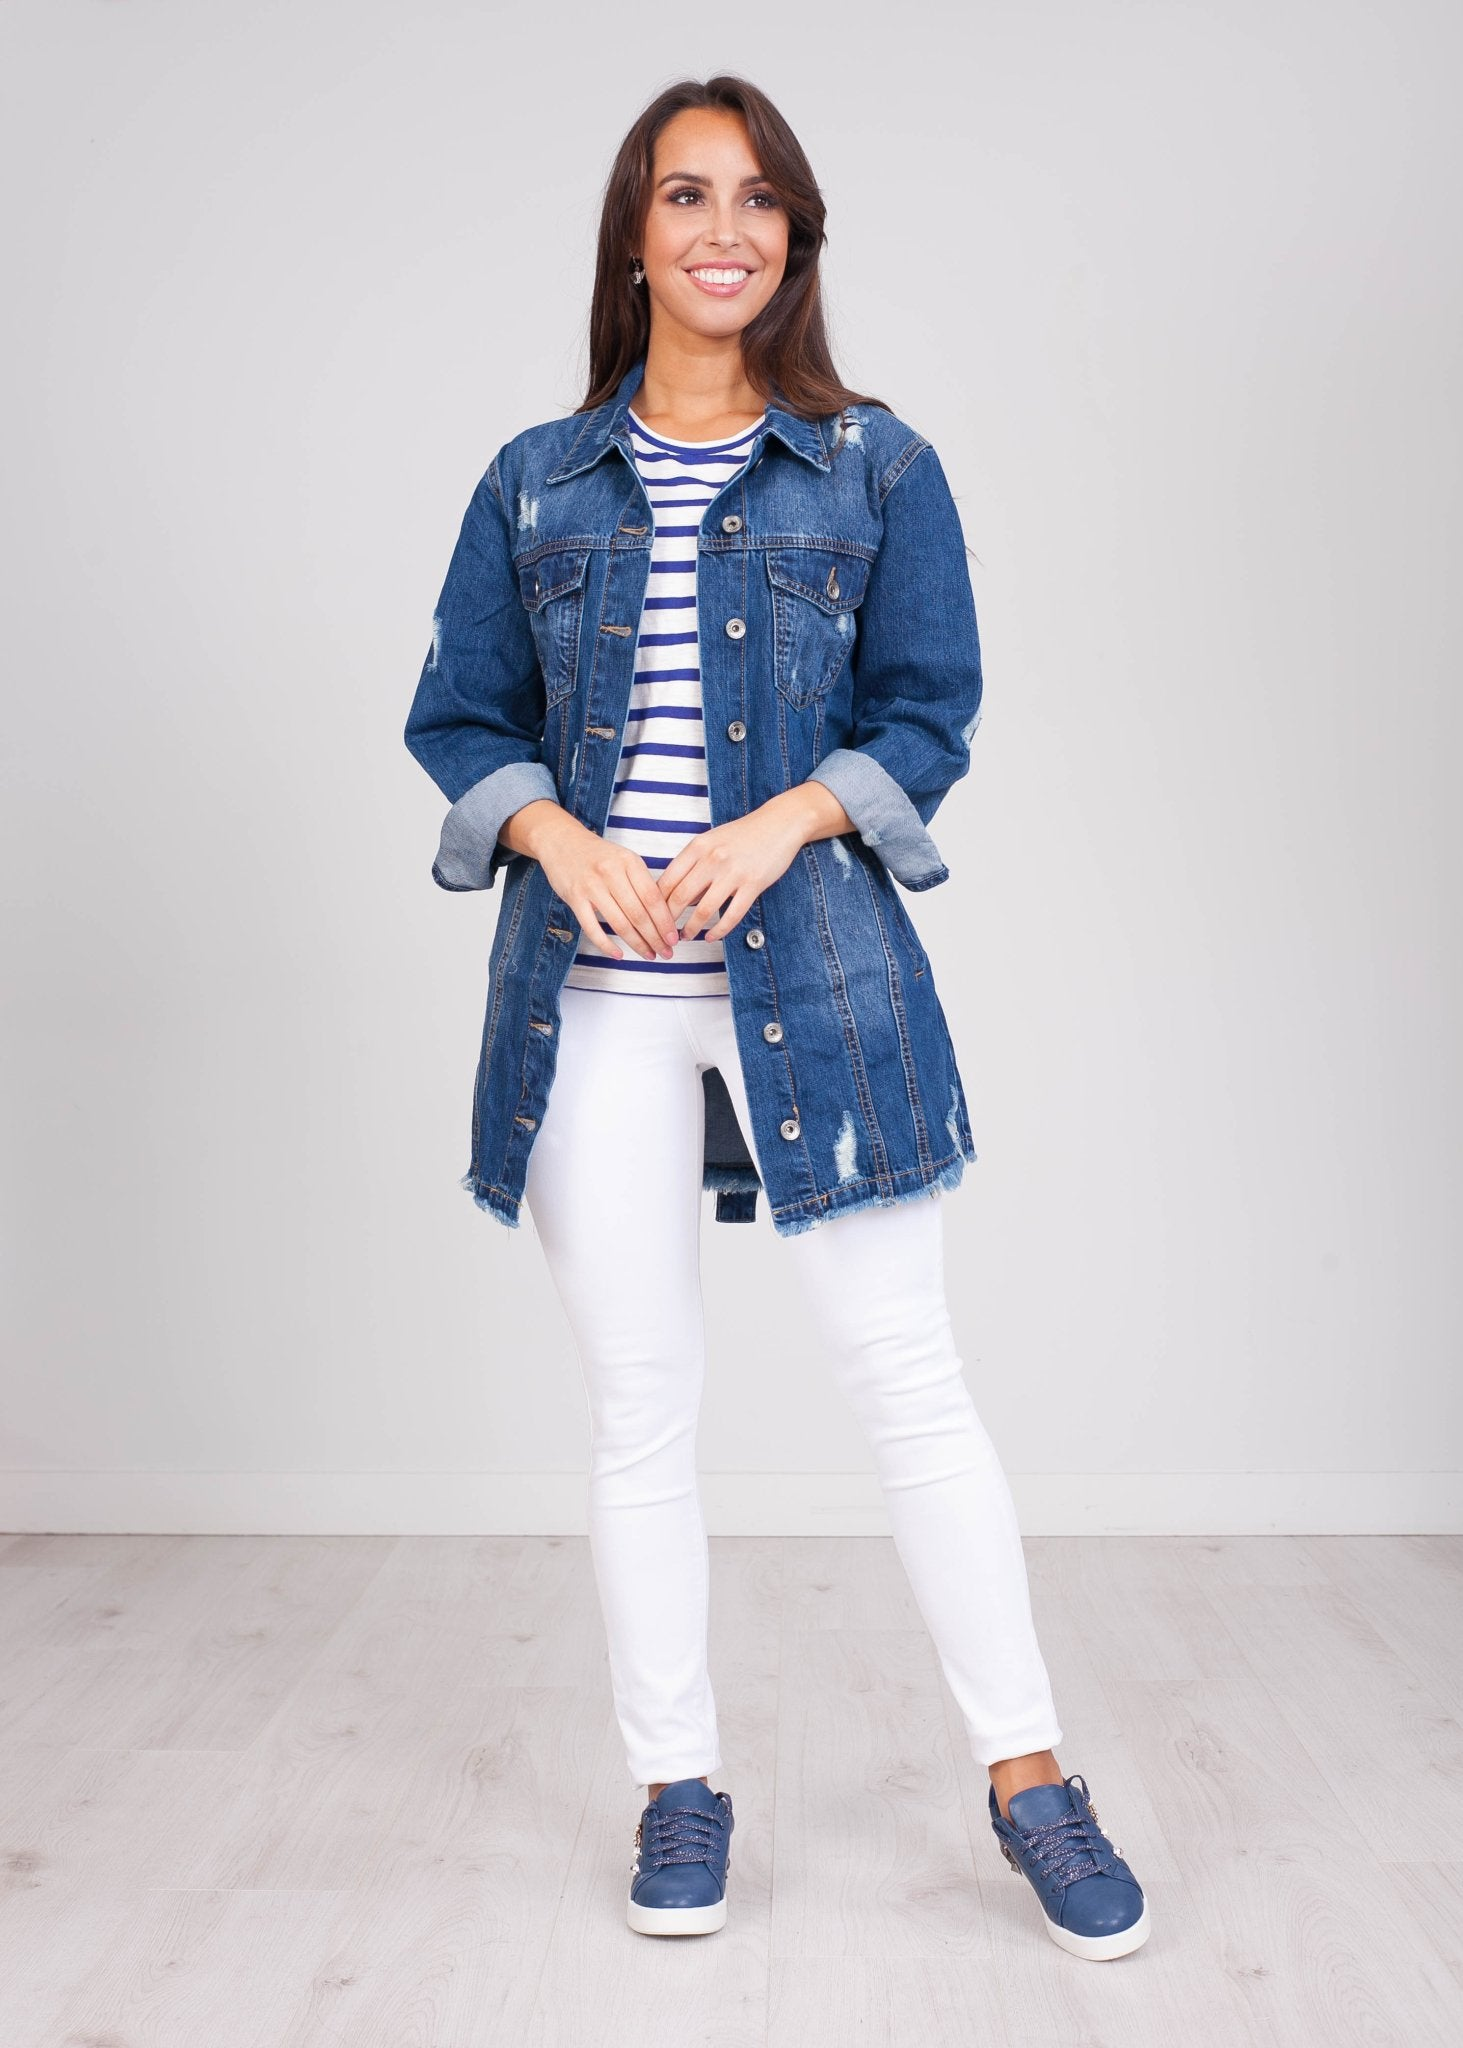 Emilia Longline Denim Jacket - The Walk in Wardrobe